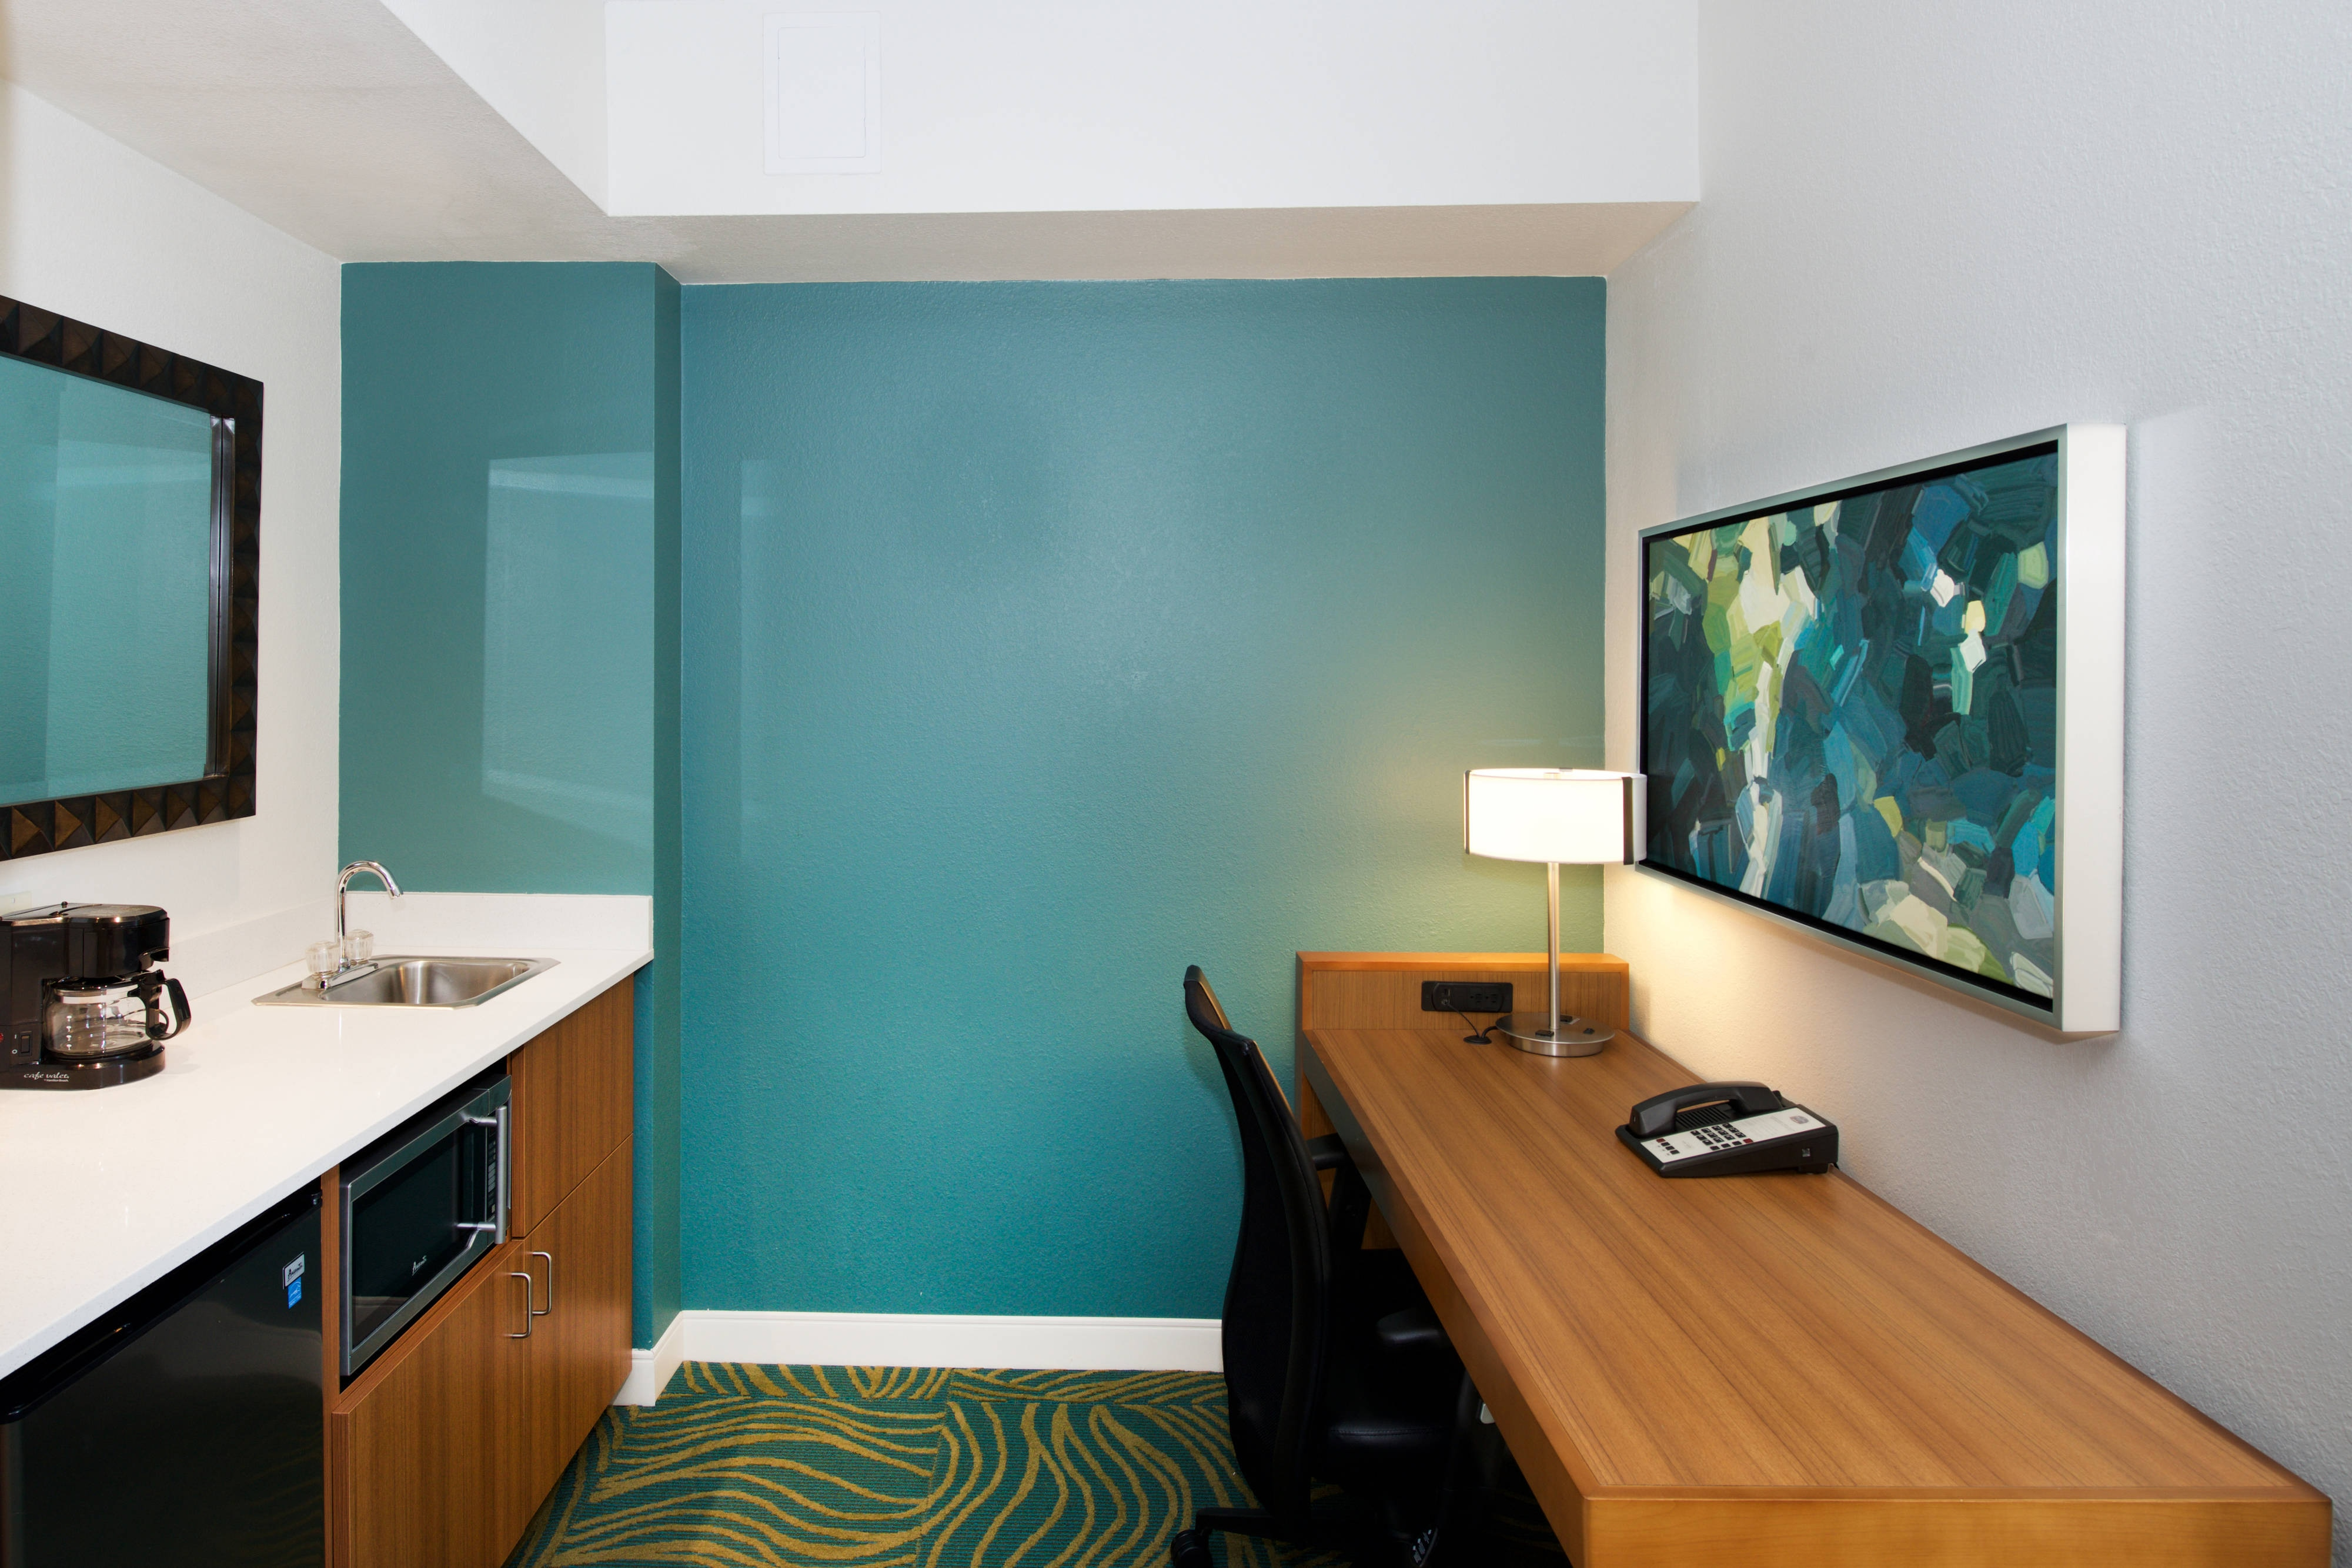 SpringHill BWI Baltimore Suite amenities